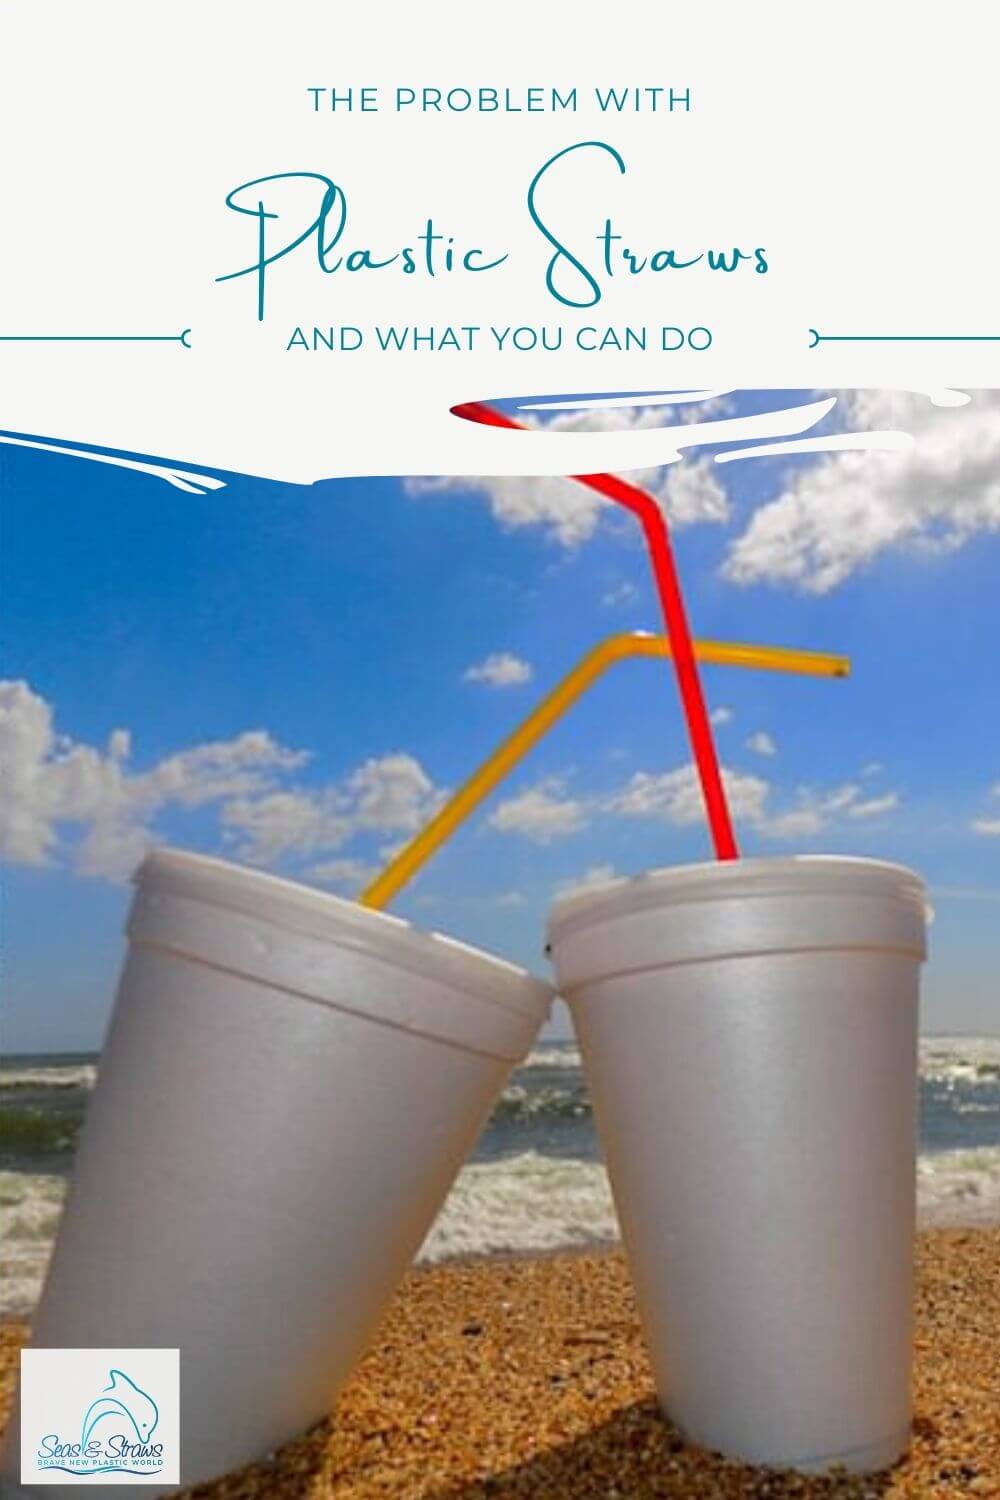 The Problem With Plastic Straws. Seas & Straws